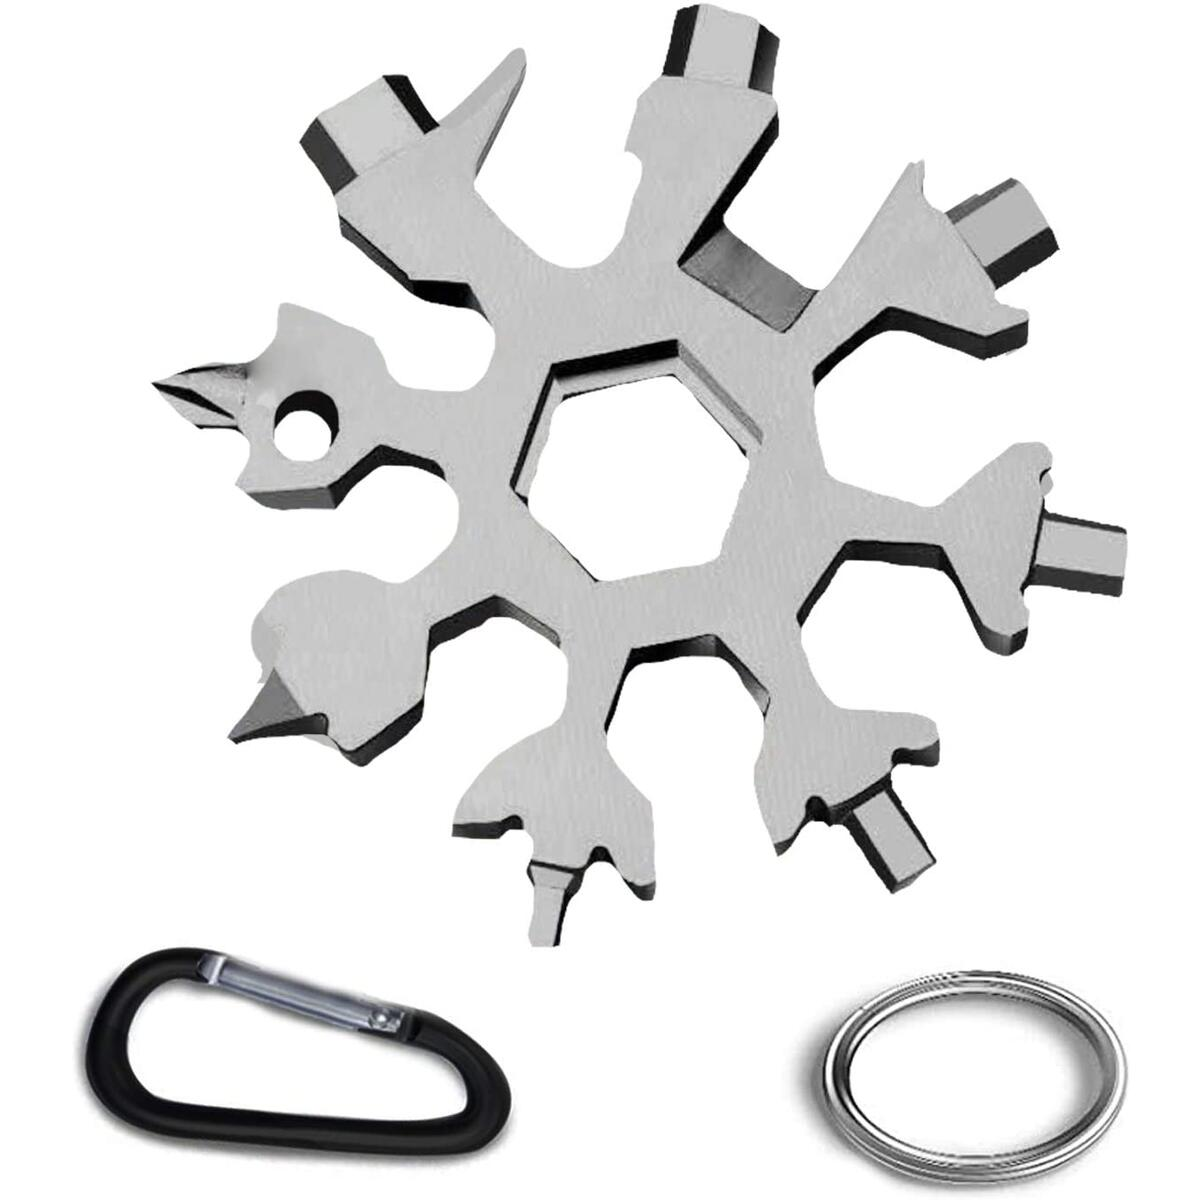 Snowflake Multi Tool, 18 in 1 Stainless Steel Snowflake Bottle Opener/Flat Phillips Screwdriver Kit/Wrench, Durable and Easy to Carry, Practical Christmas Gift(Silver)